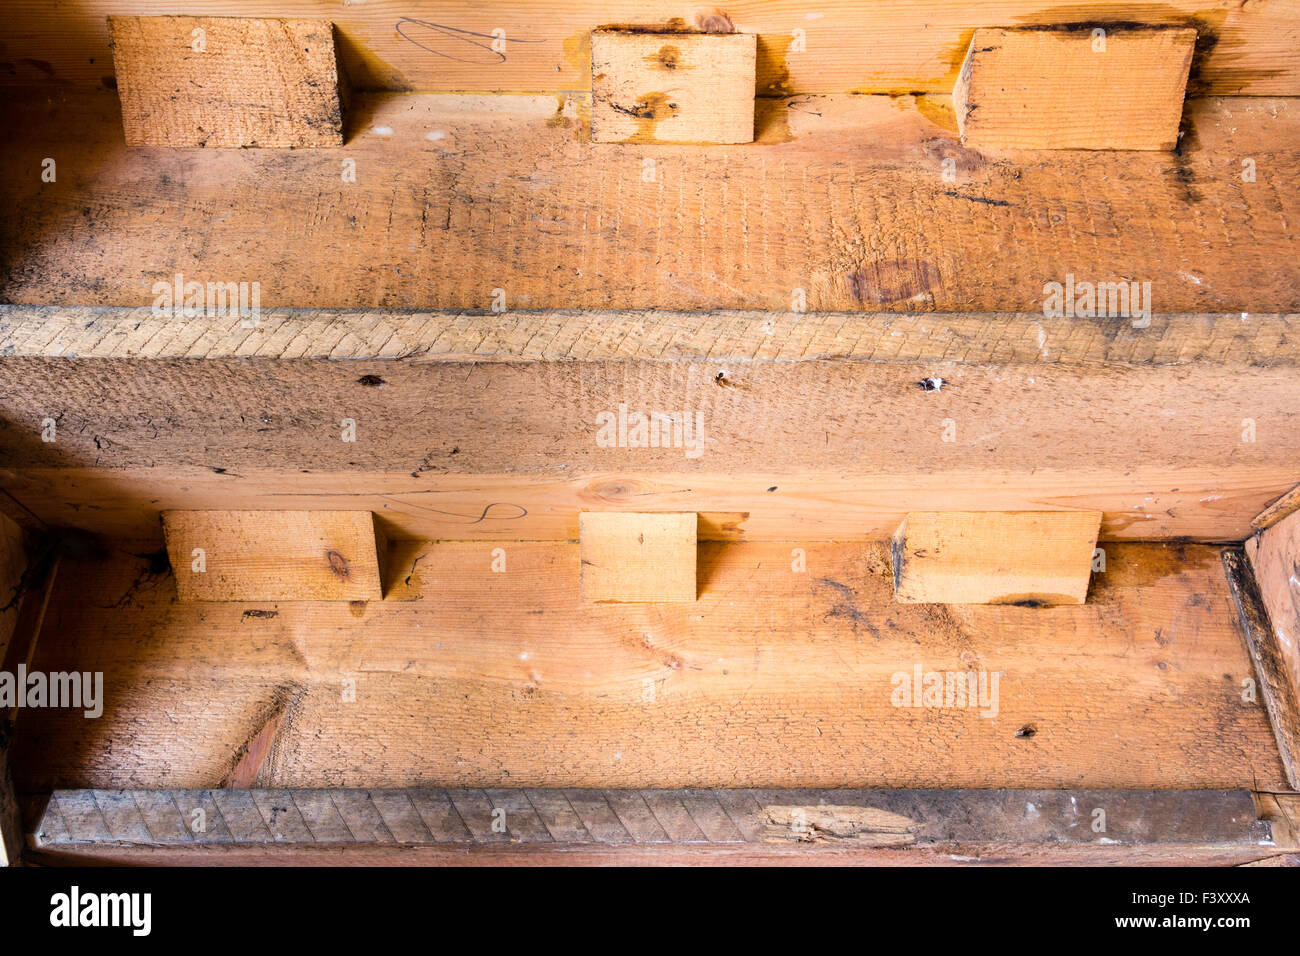 Victorian staircase, The underside of a Victorian staircase showing construction and carpentry joinery details. - Stock Image